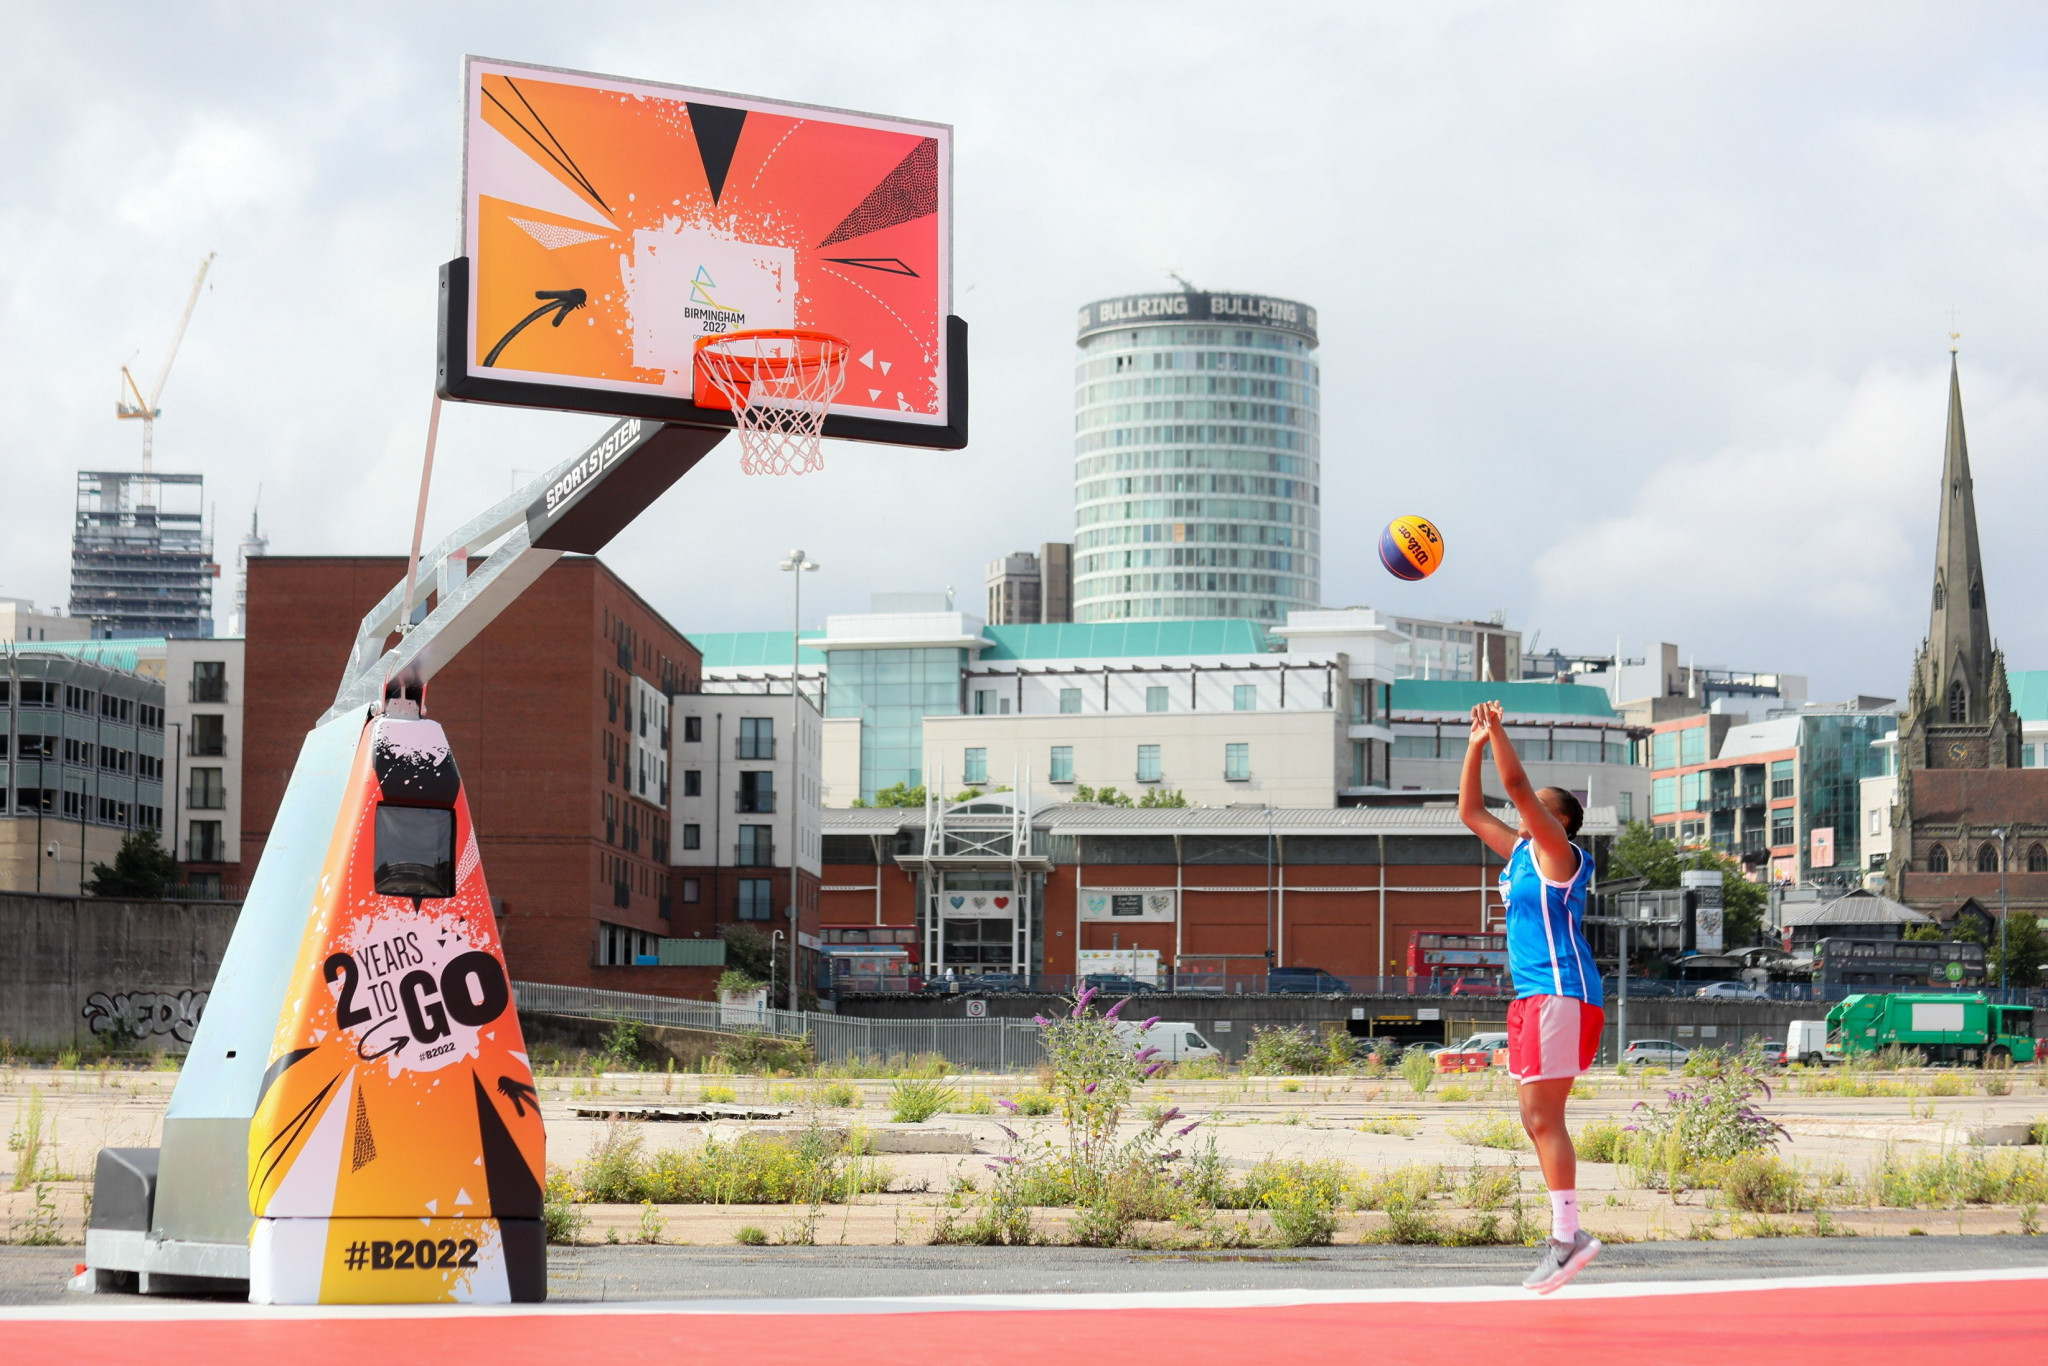 Birmingham 2022 unveiled venues for the 3x3 basketball and beach volleyball events as it celebrated two years to go until the Games ©Birmingham 2022